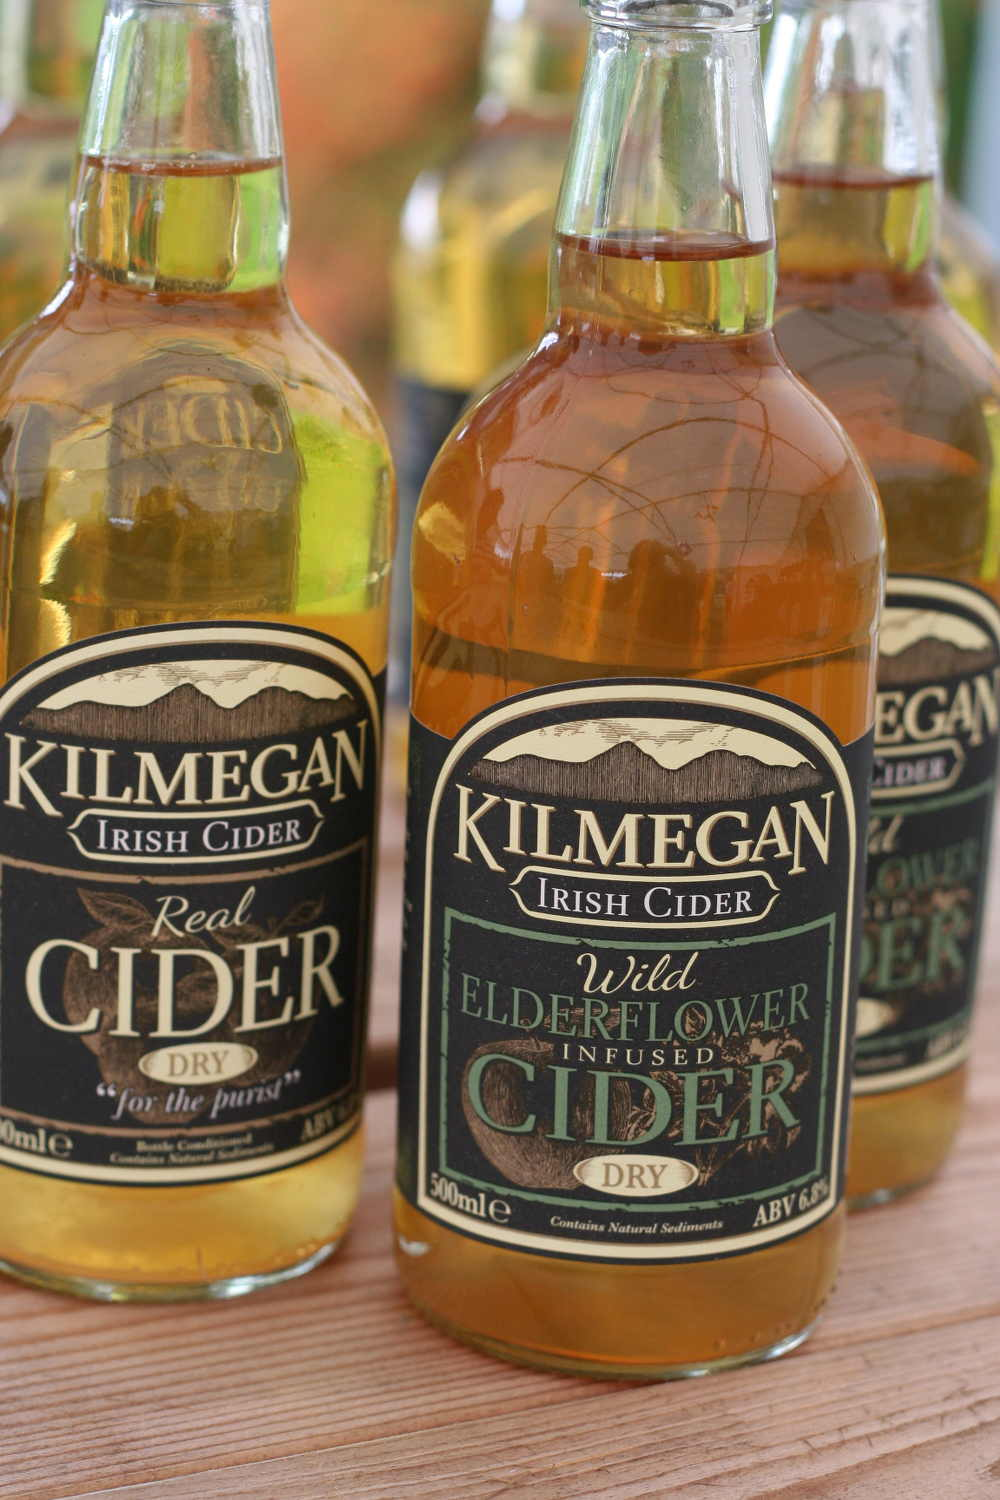 Kilmegan Wild Elderflower-Infused Cider